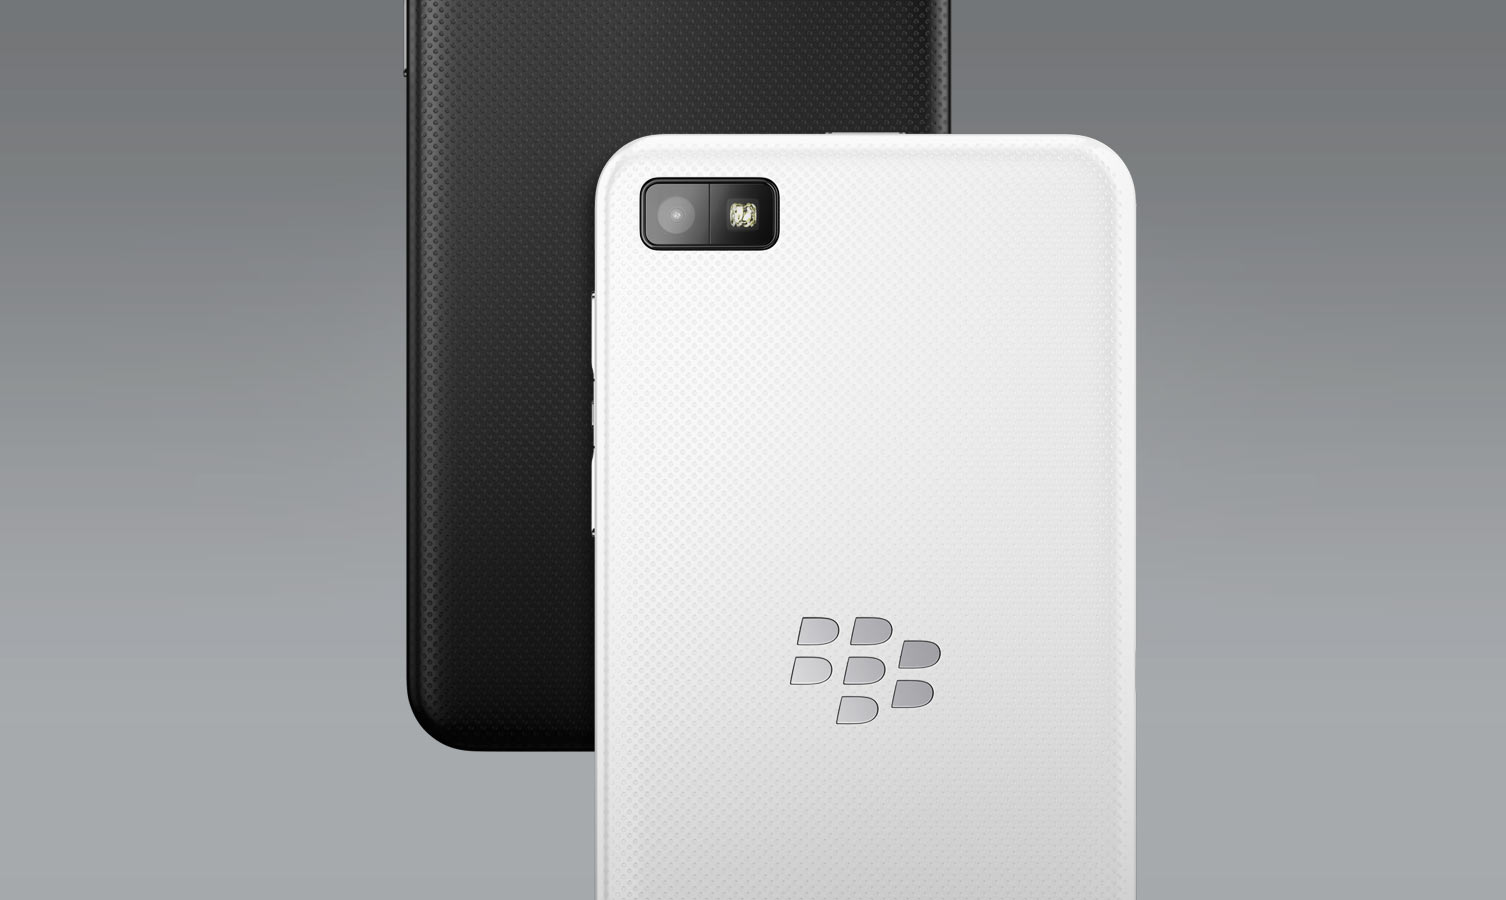 Camera BlackBerry Z10